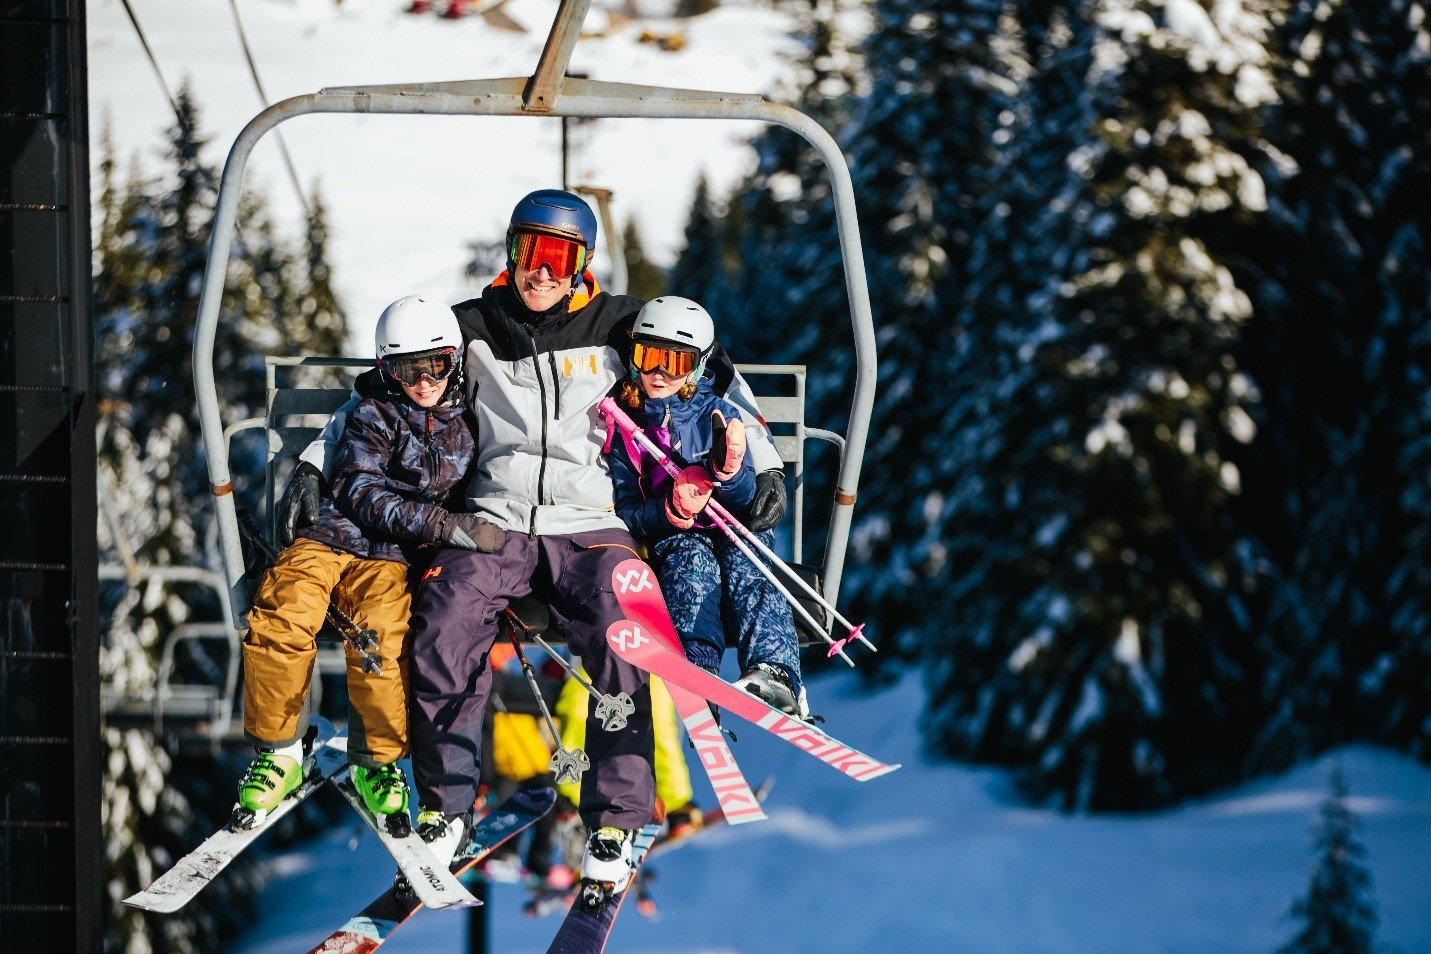 Oregon's Most Family-Friendly Ski Resorts